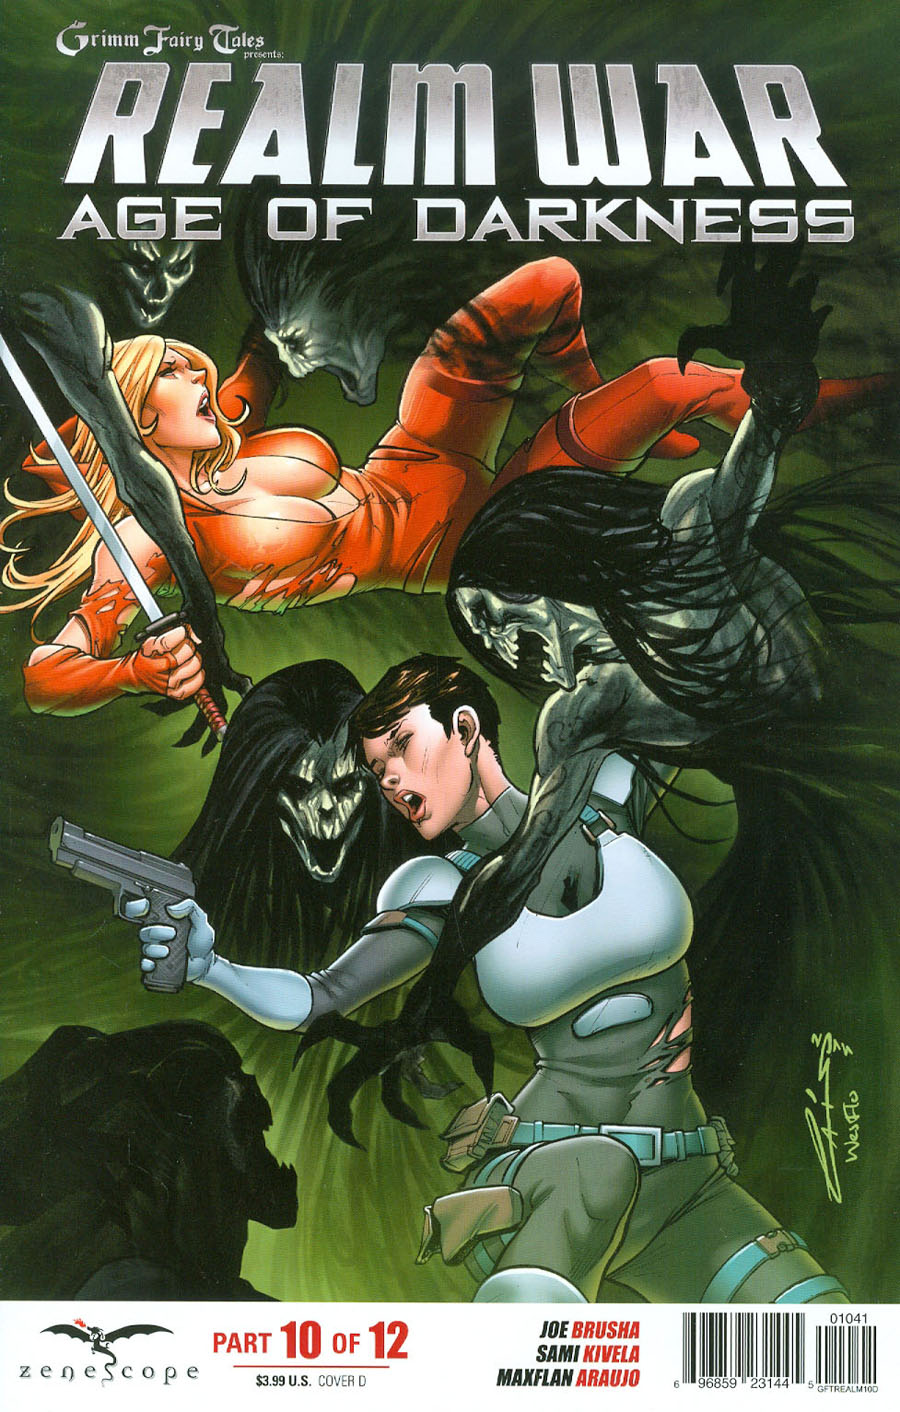 Grimm Fairy Tales Presents Realm War #10 Cover D Emilio Laiso (Age Of Darkness Tie-In)